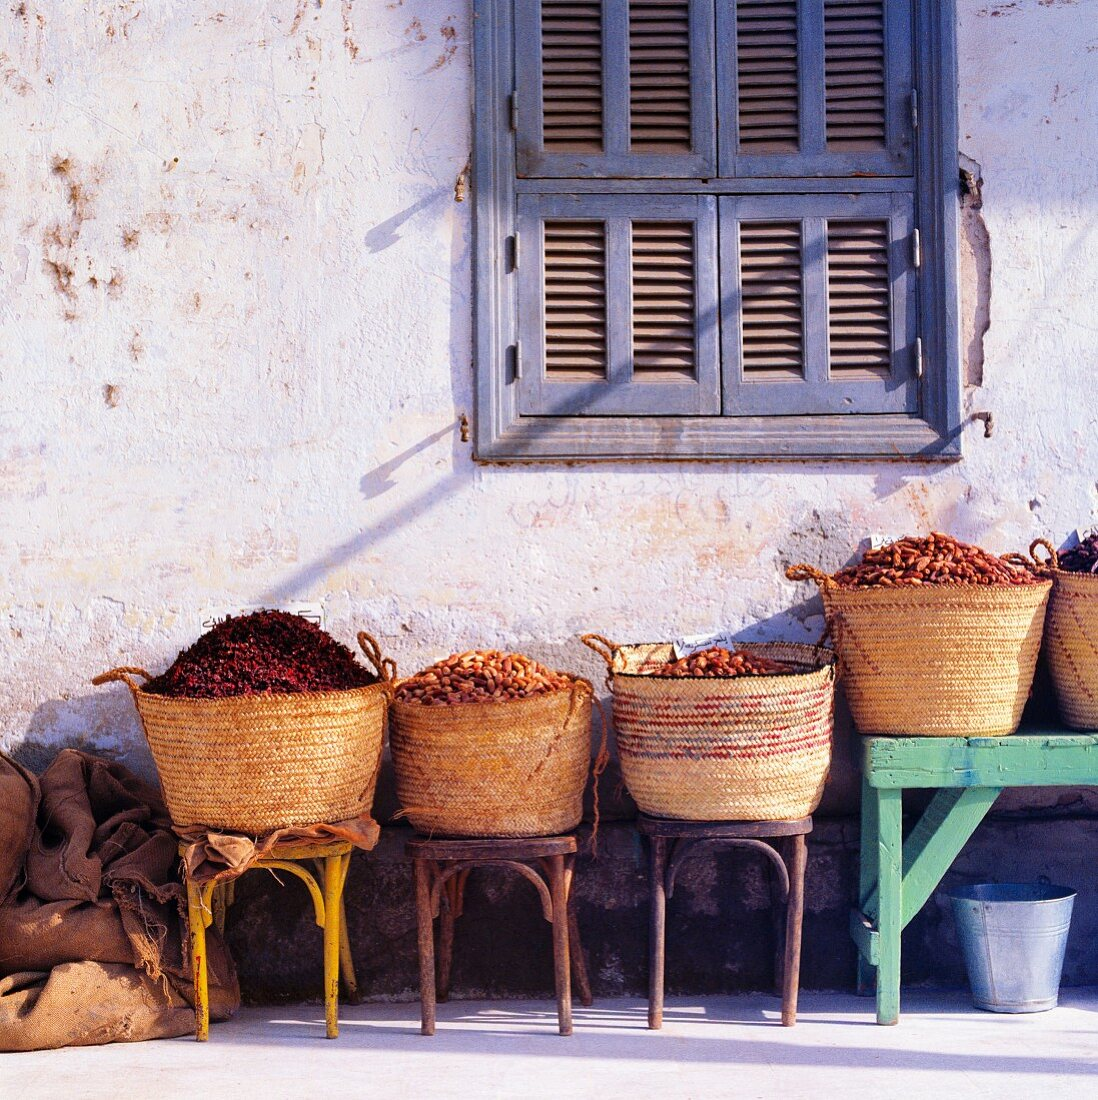 Baskets of dried food outside building